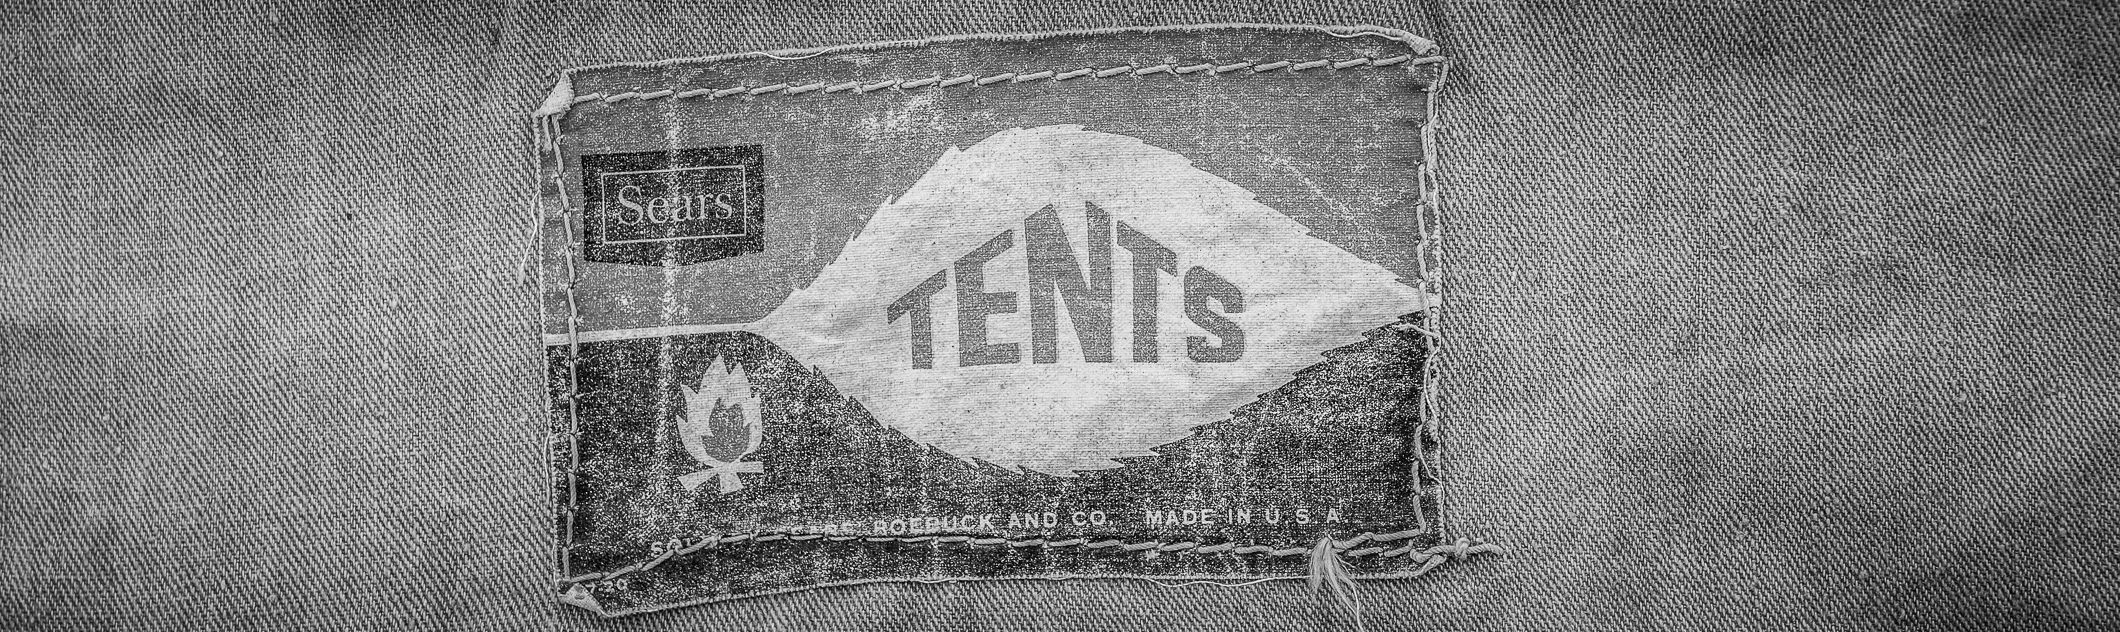 Sears Canvas Tent http://www.bethnchris.com/2013/03/24/new-vintage-sears-canvas-tent/